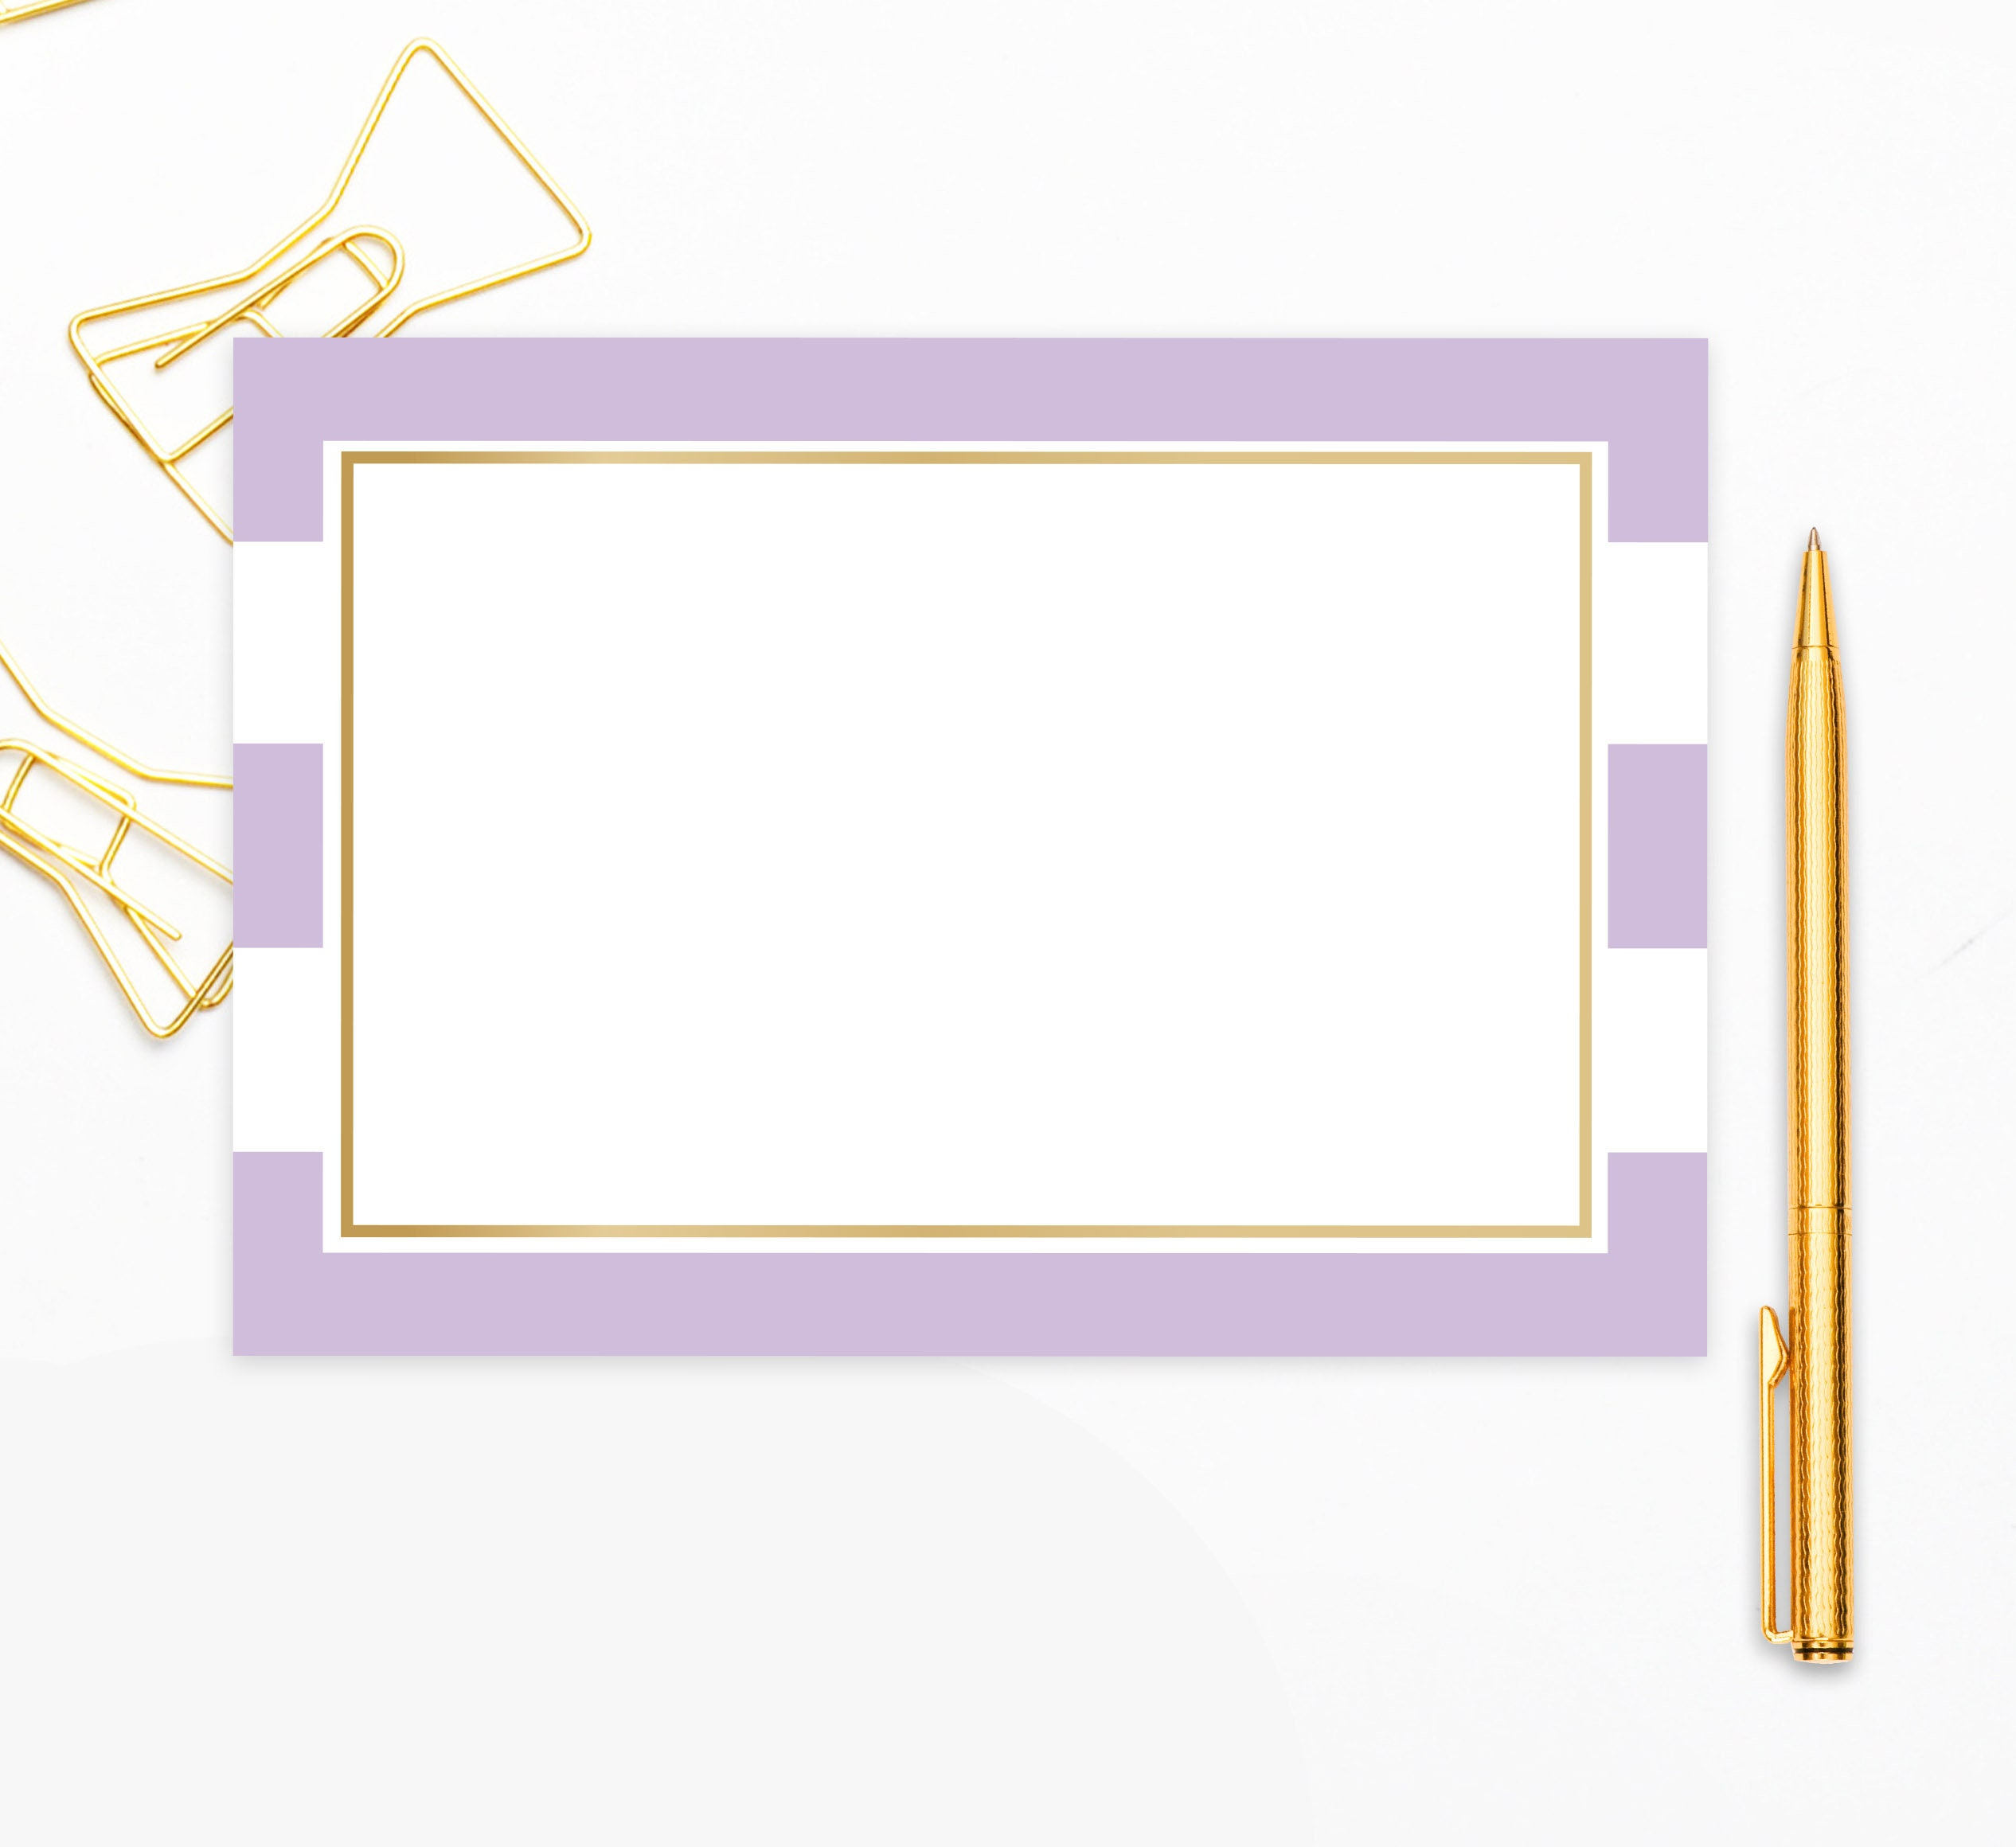 Blank Name Tags, Wedding Name Tags, Lavender and Gold, Purple Bridal  Shower, Name Stickers, Avery Name Tags, Adhesive Name Badges, LAV1